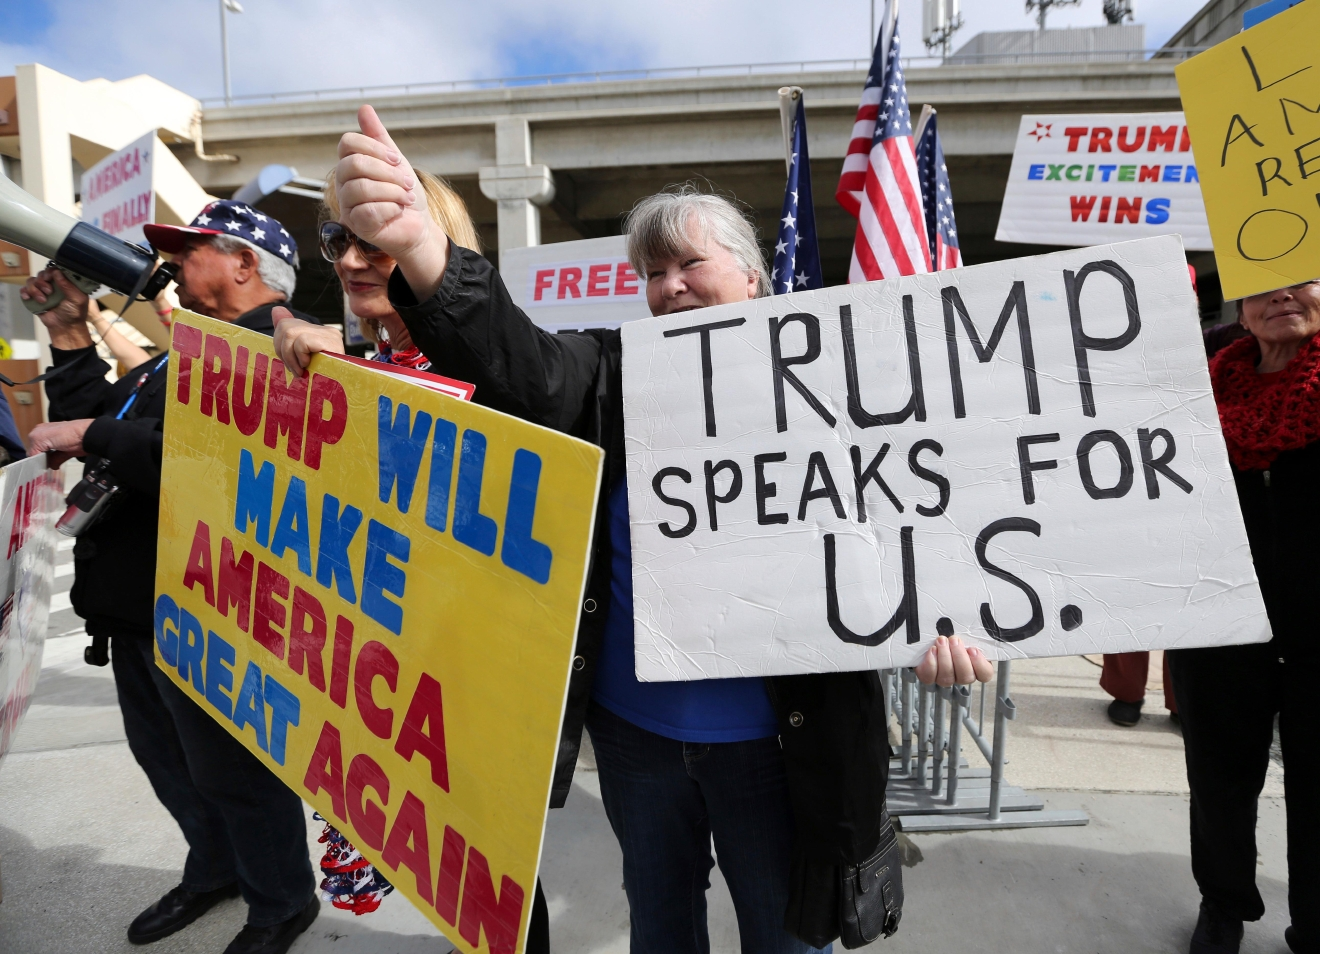 FILE - In this Feb. 4, 2017, file photo, a woman gives a thumbs up in Los Angeles, Calif., as demonstrators in favor of President Donald Trump's executive order banning travel to the U.S. from seven primarily Muslim nations stand across the street from the Tom Bradley International Terminal at Los Angeles International Airport. President Donald Trump's administration said in court documents on Thursday, Feb. 16, 2017, it wants an end to the legal fight over its ban on travelers from seven predominantly Muslim nations and will instead issue a replacement ban.  (AP Photo/Reed Saxon, File)